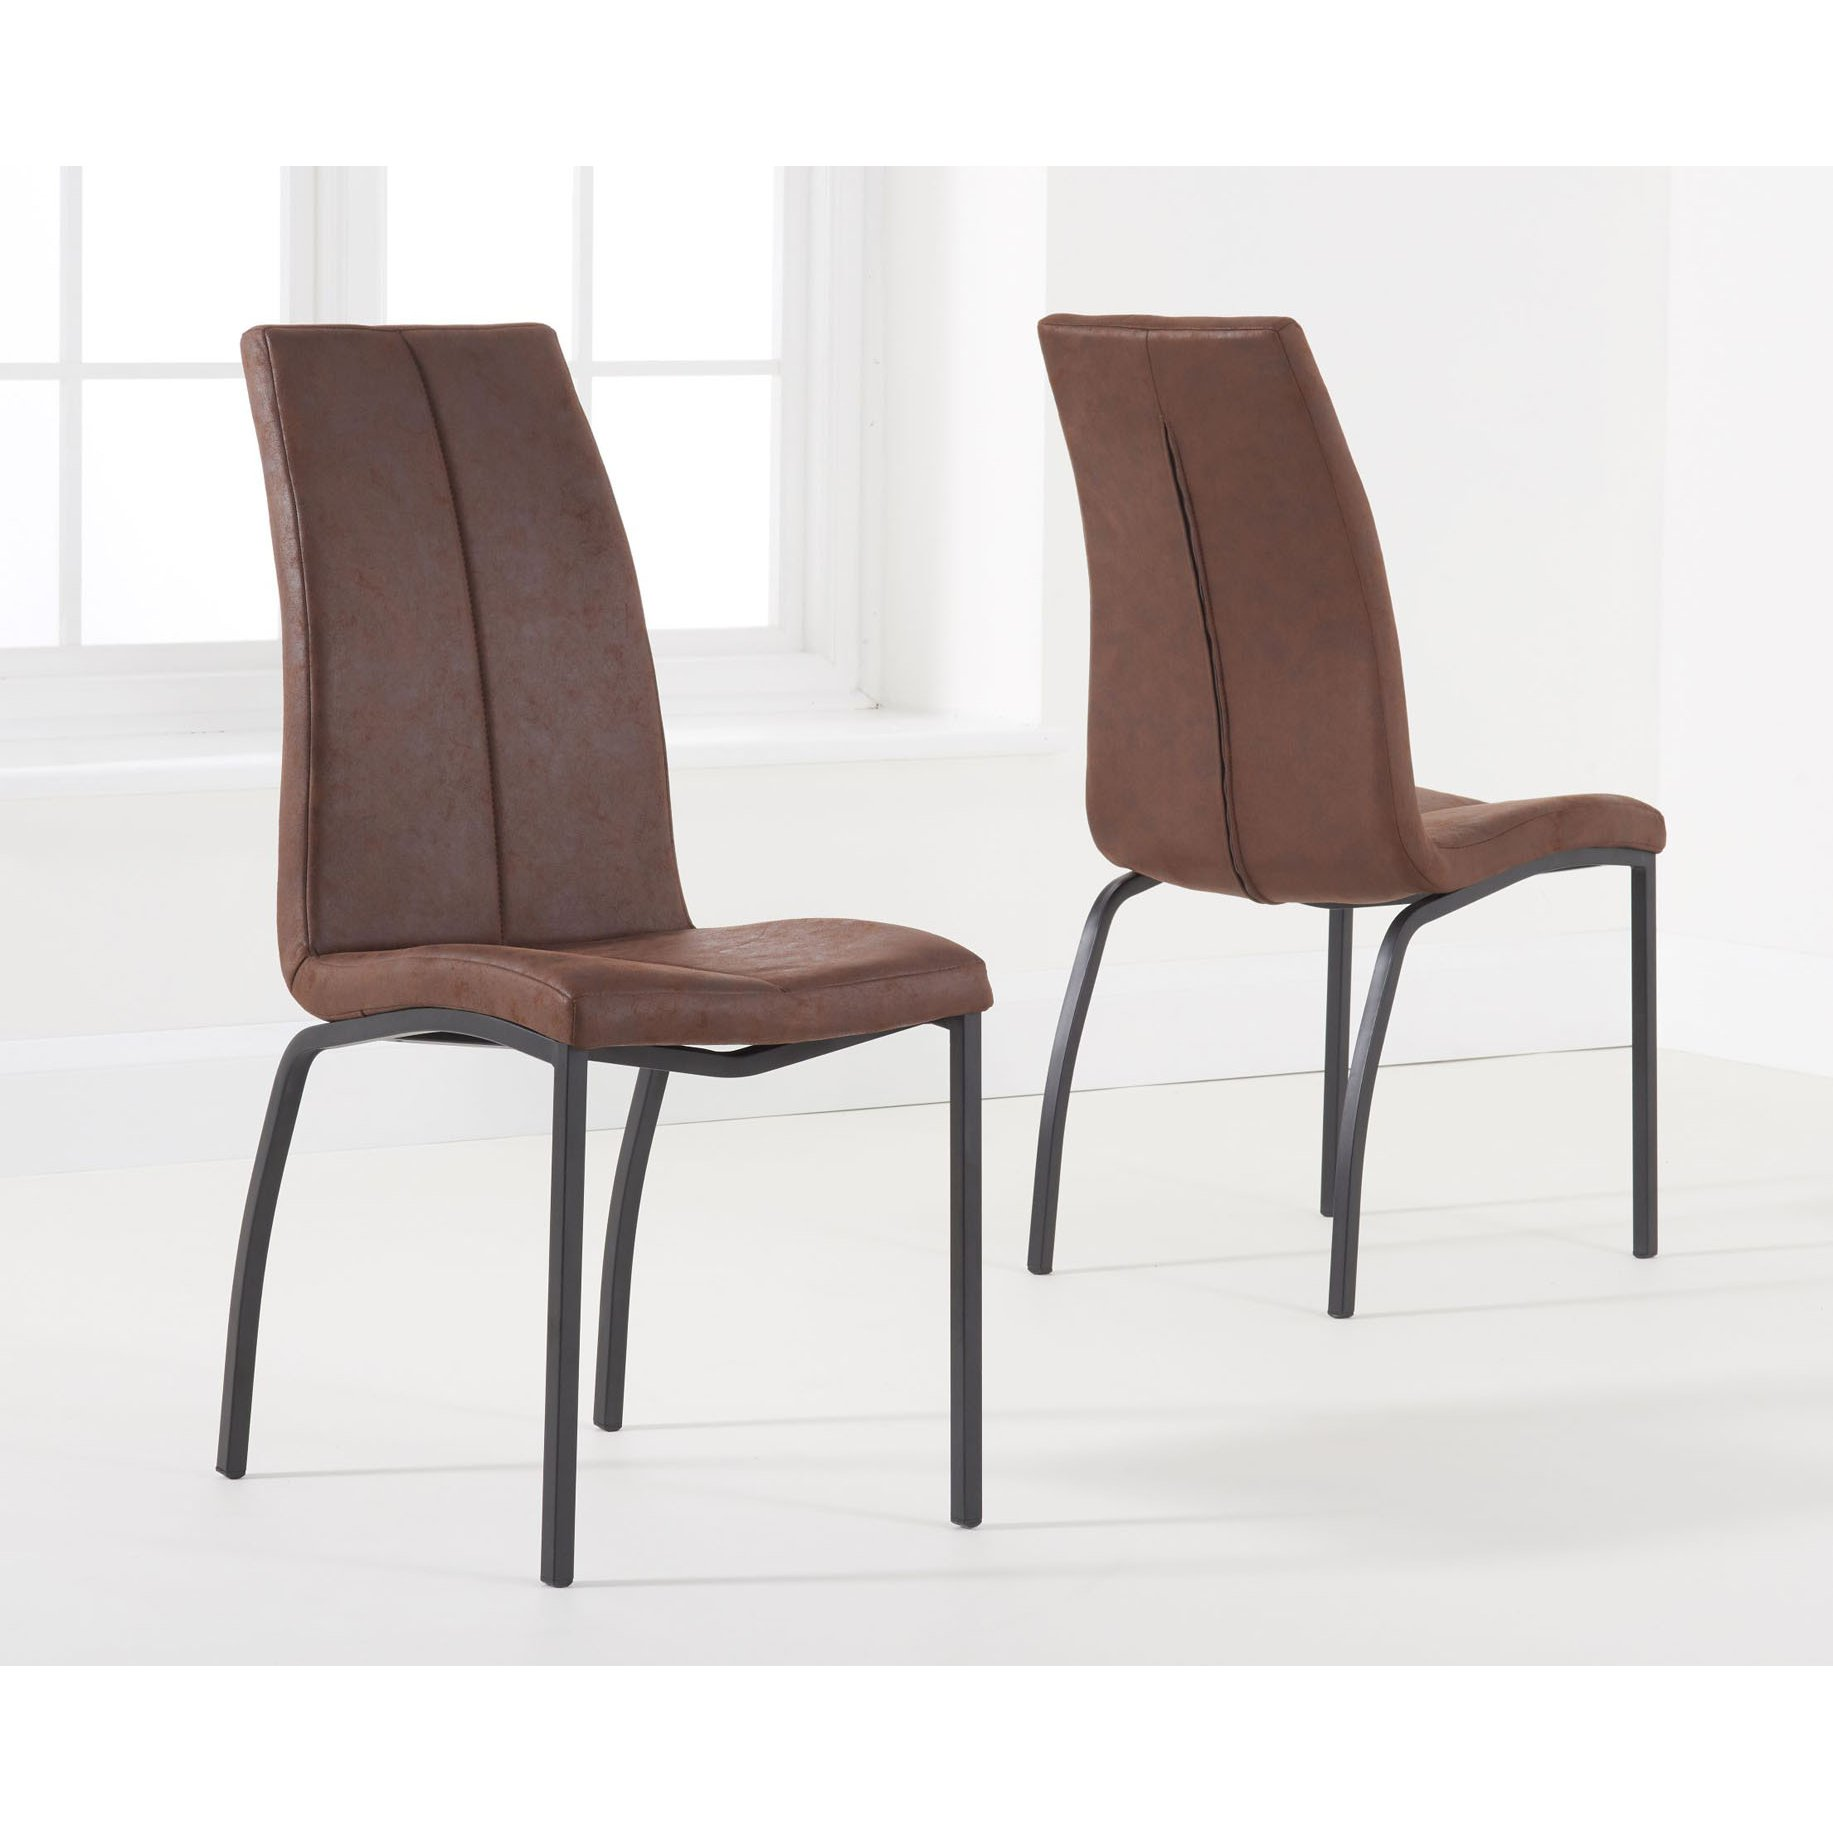 image-Nadia Furniture Antique Brown Fabric Dining Chair Pair